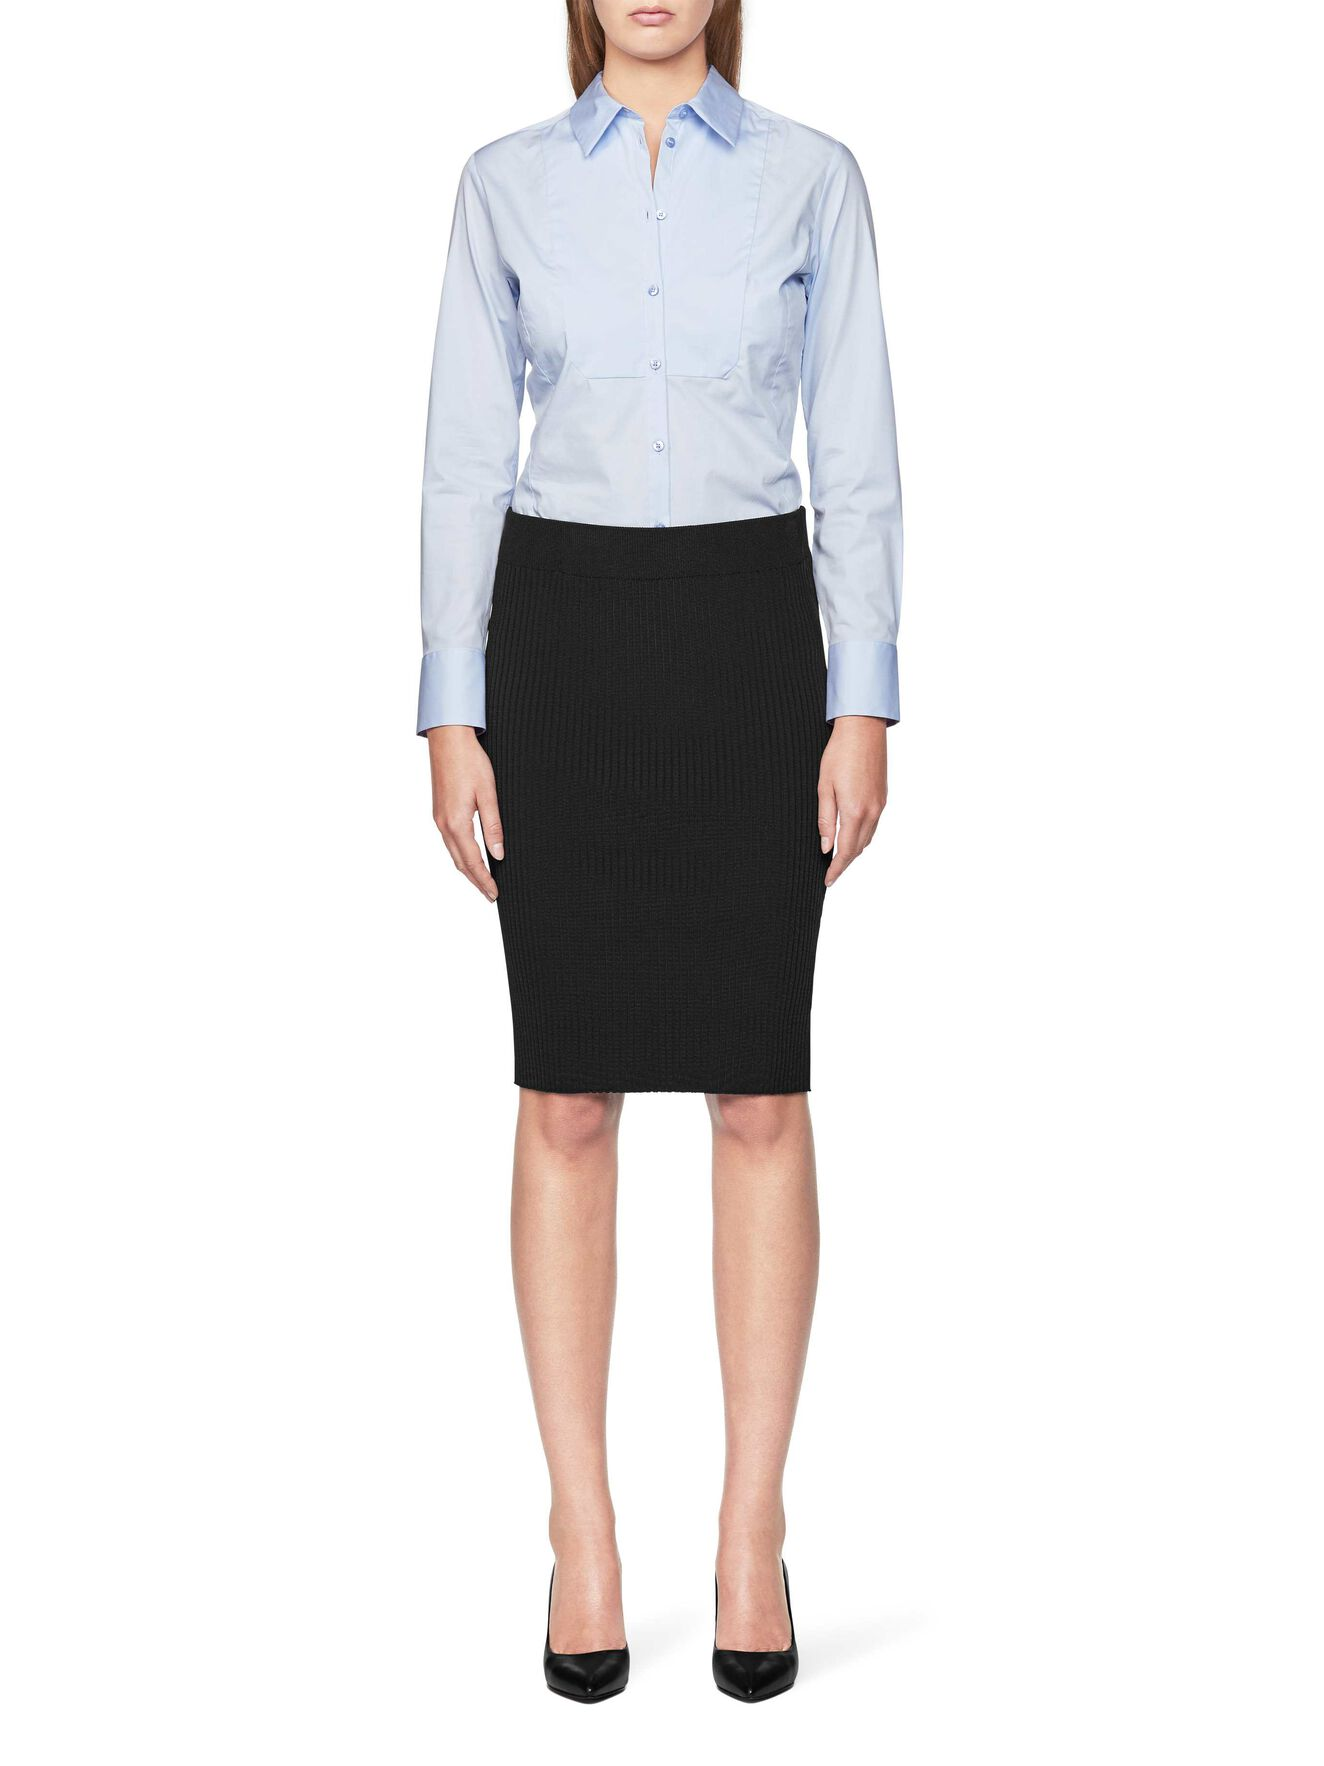 Beatrix Skirt in Deep Well from Tiger of Sweden